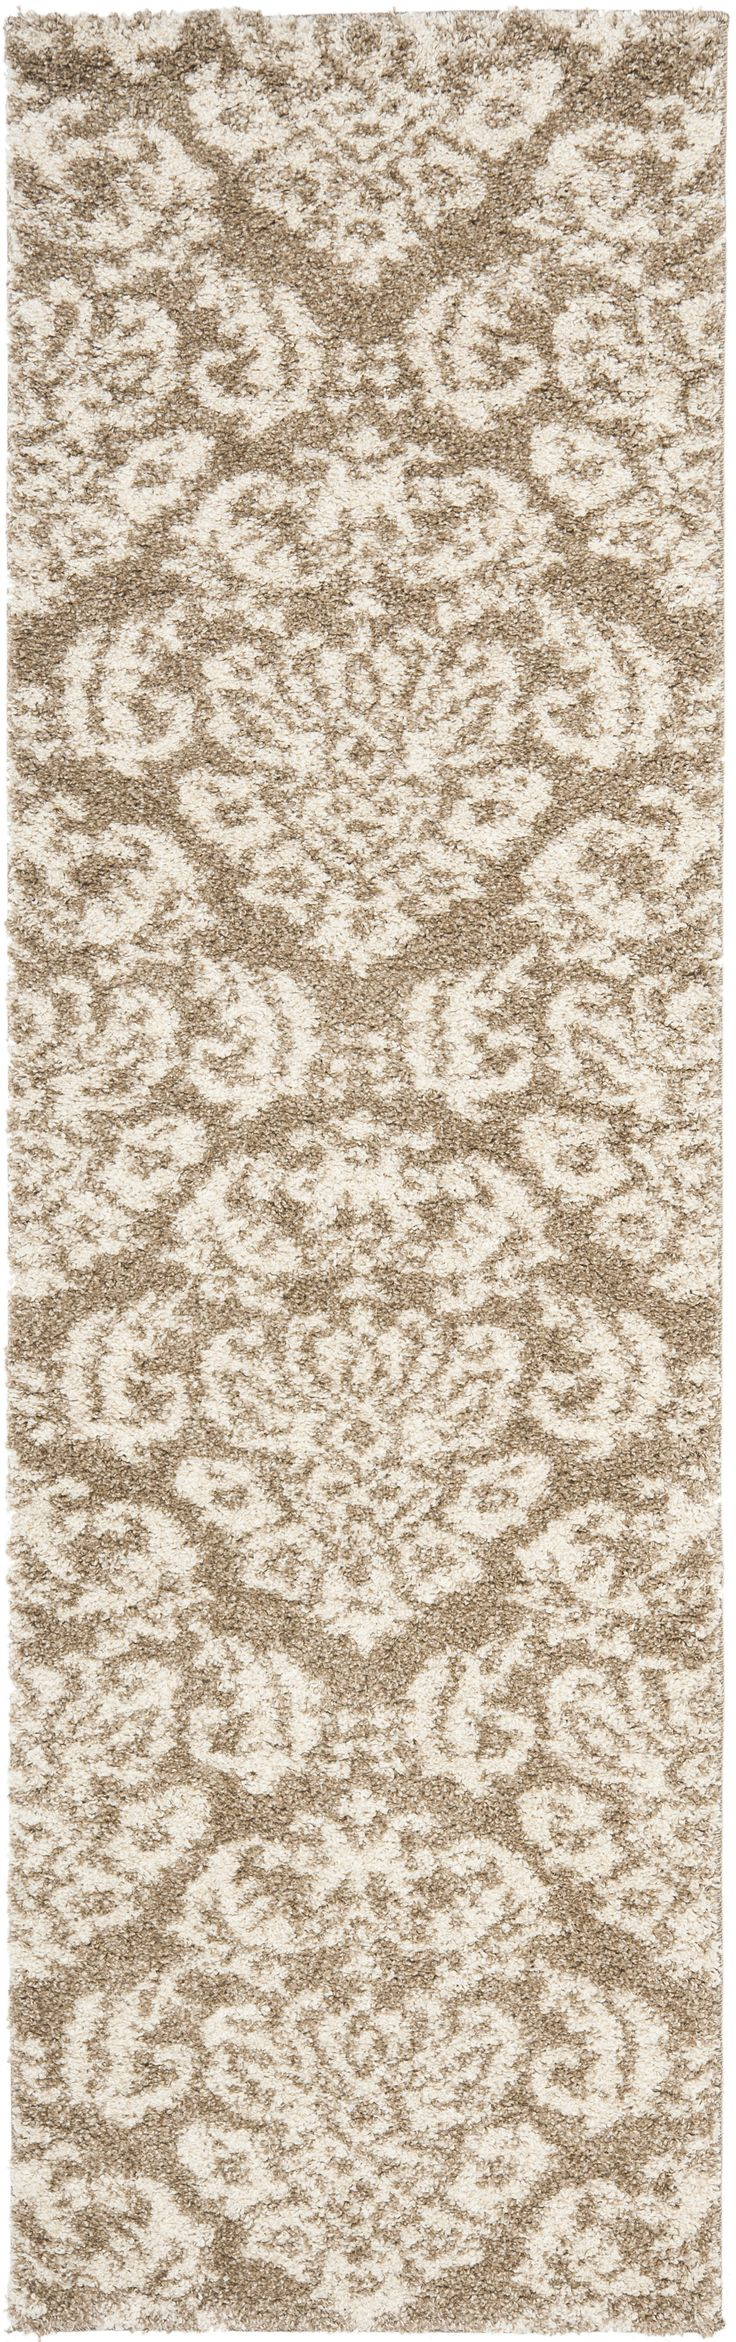 Florida Shag Rug (SG460), Grey/Beige;Beige/Cream;Dark Brown/Smoke;Smoke/Beige